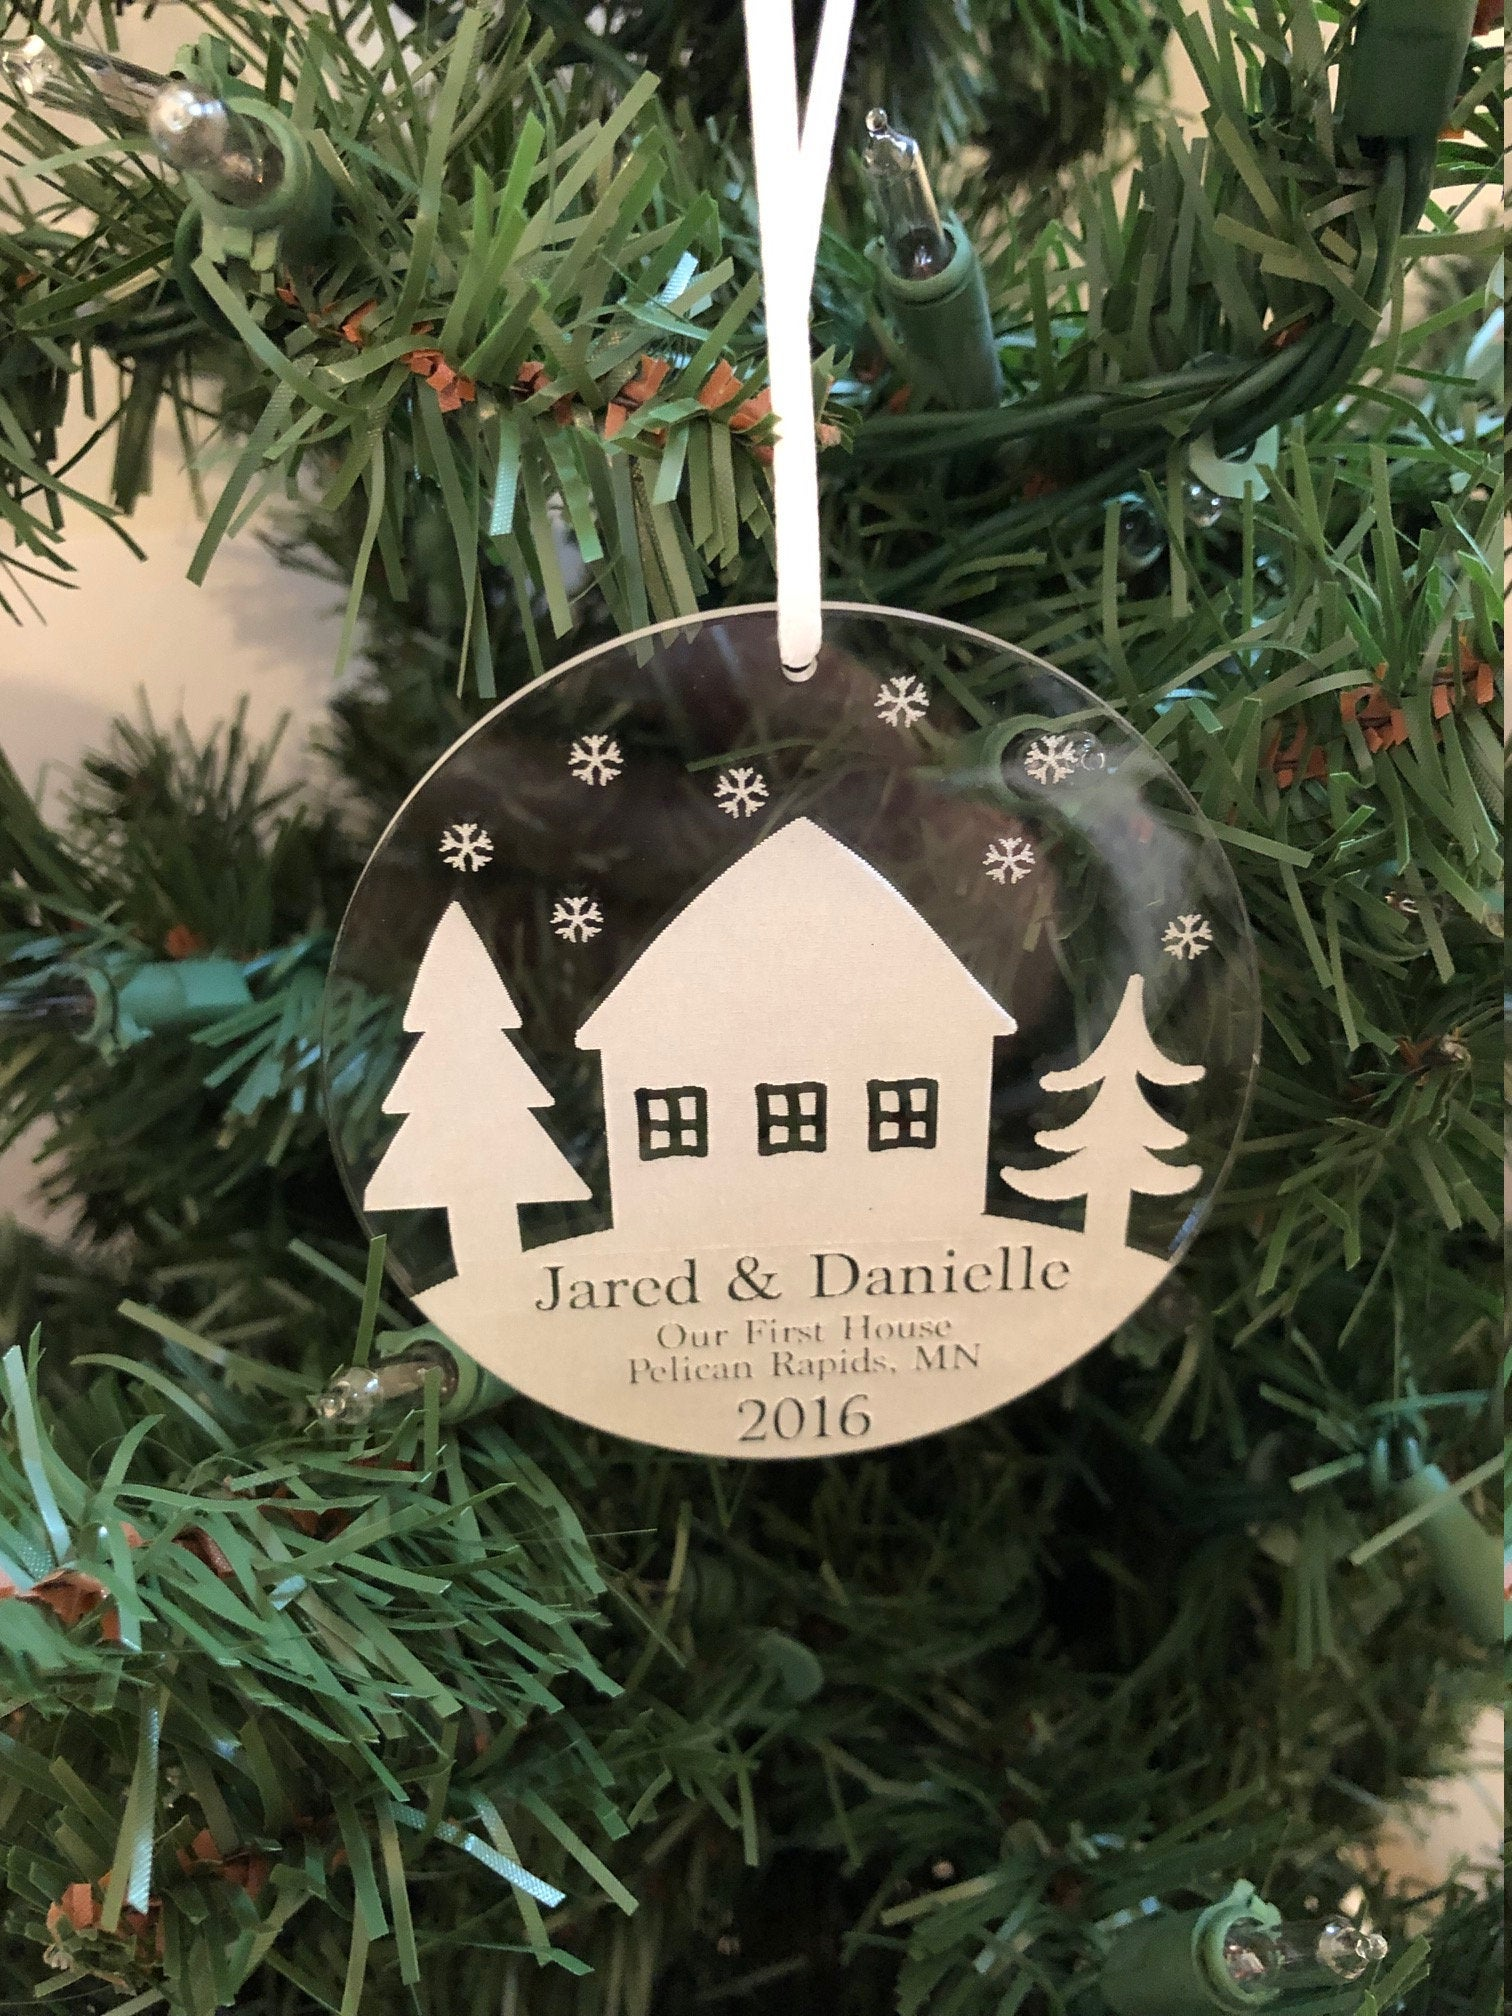 Our First Home Christmas Ornament.Us 14 99 Our First Home Bulb Style Christmas Ornament Personalized Christmas Ornament Gifts For Couple New House Memory On Aliexpress 11 11 Double